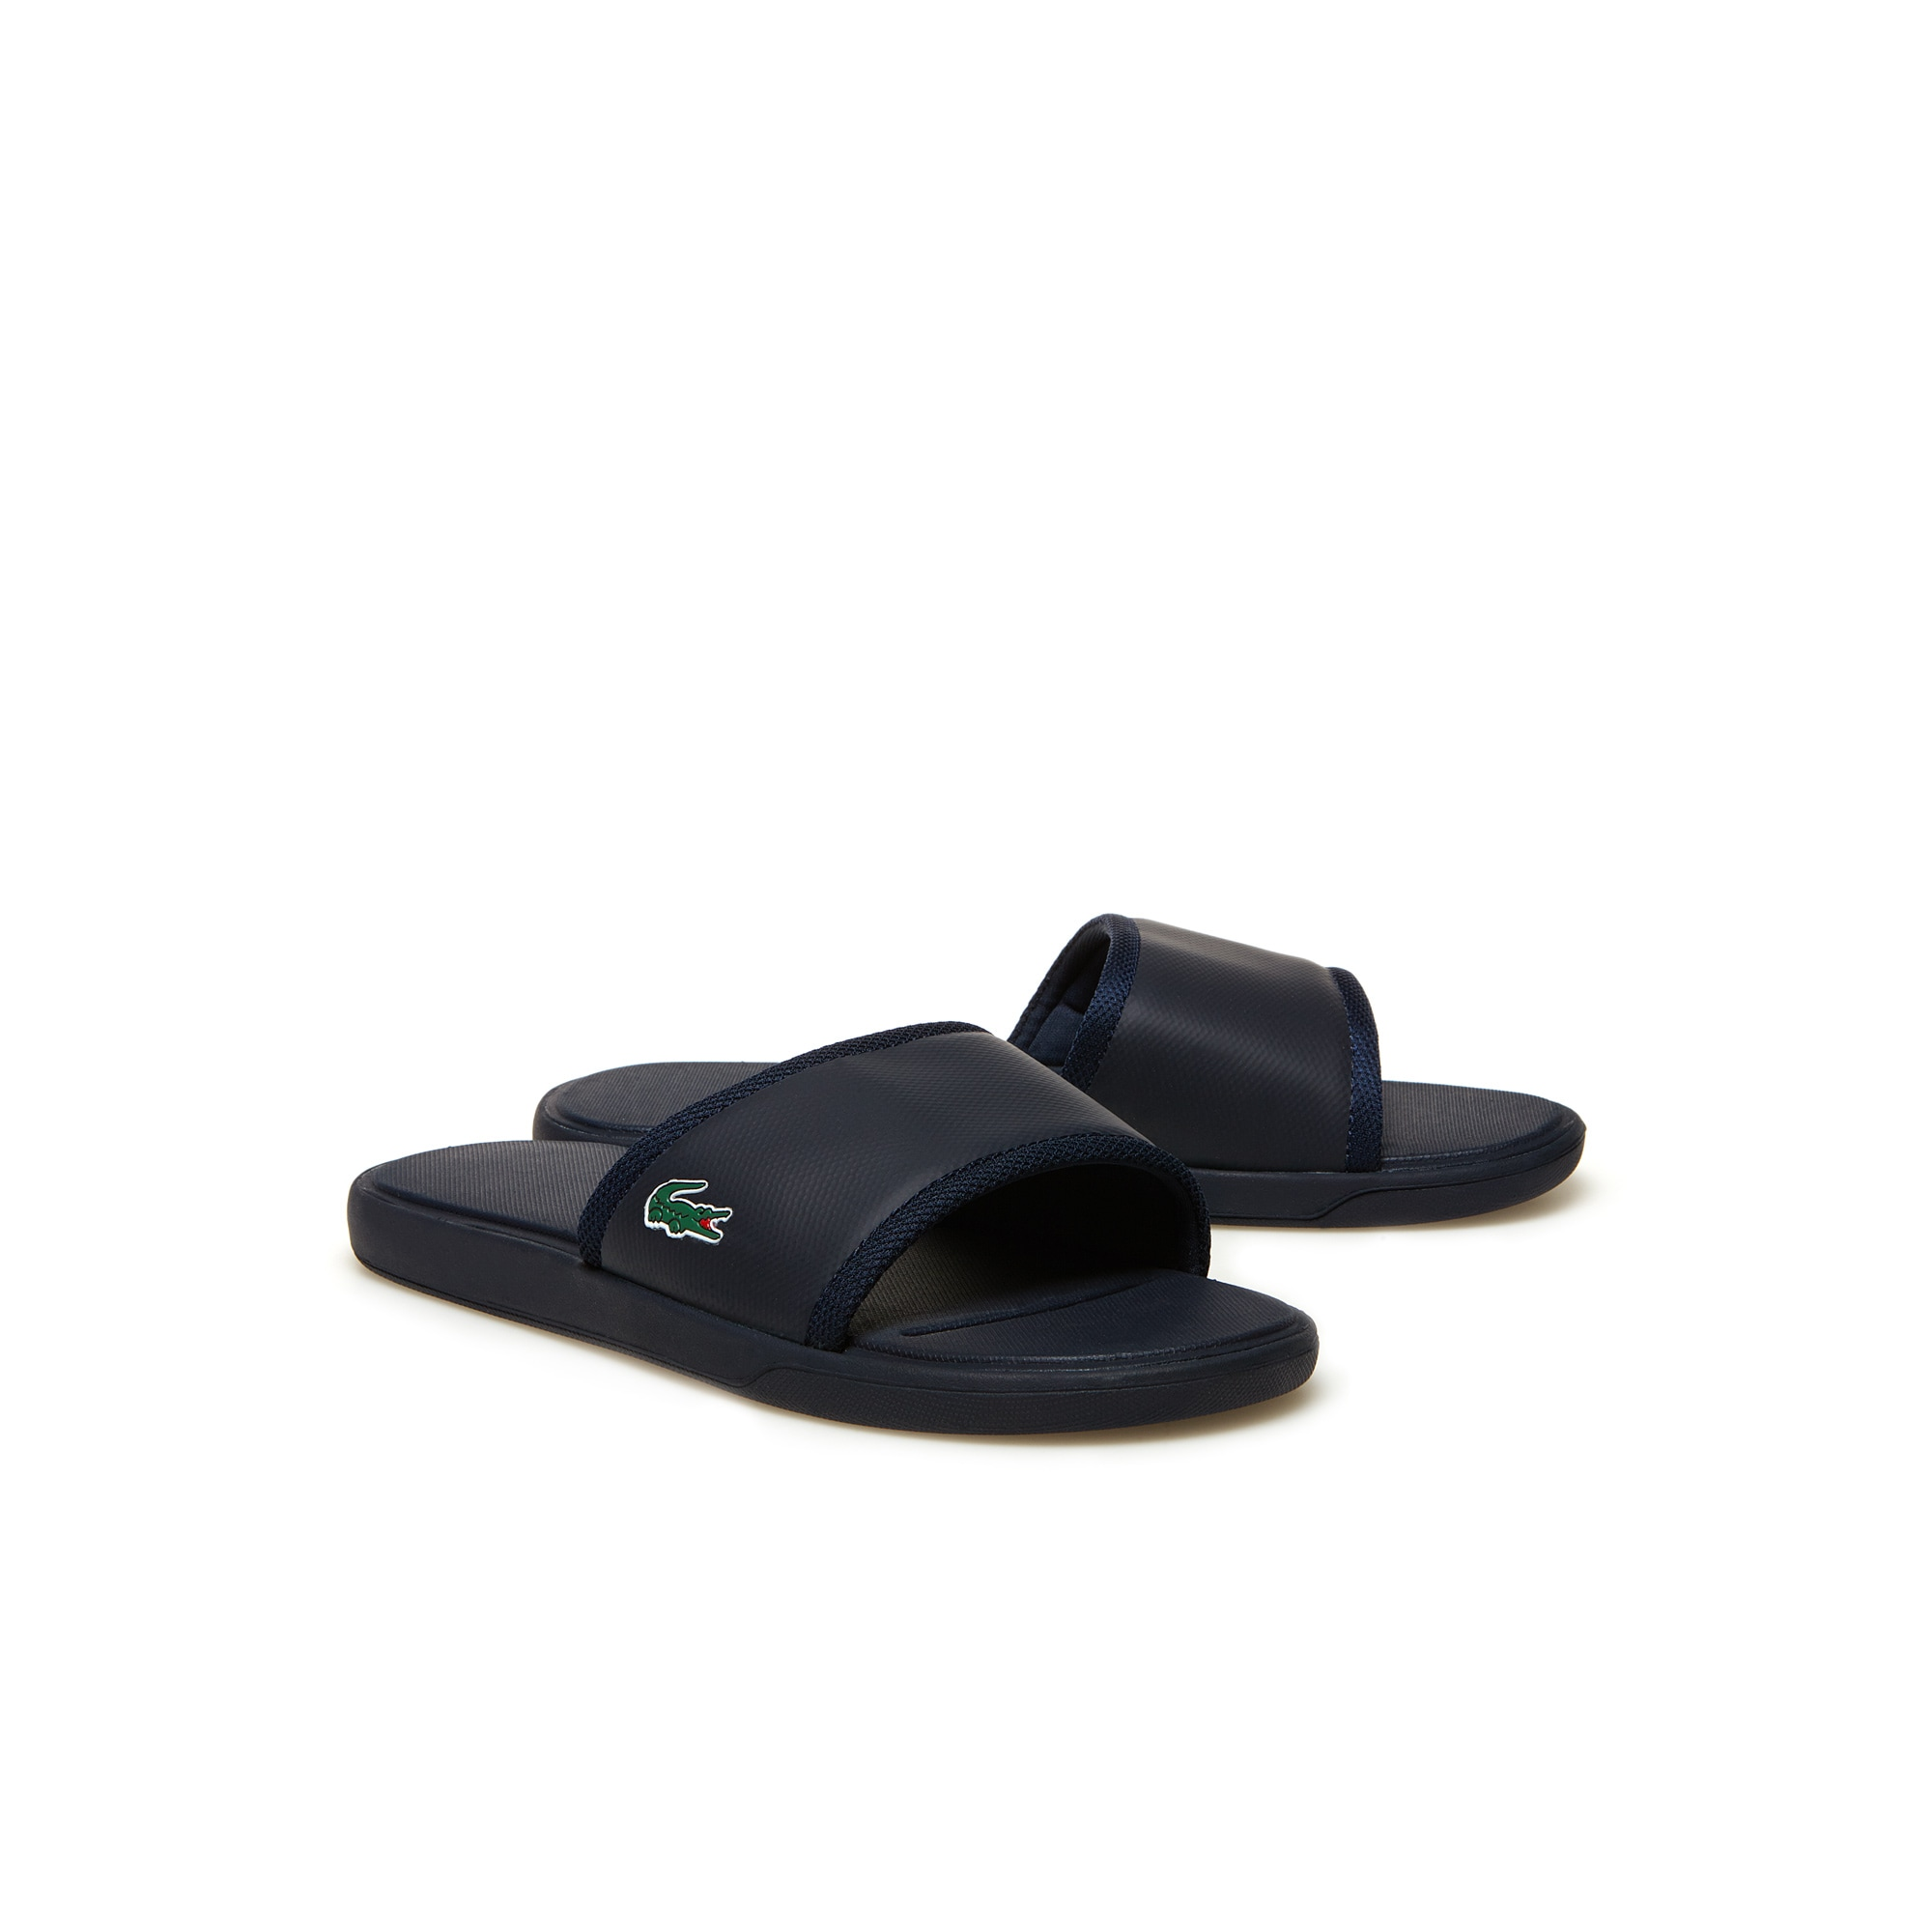 c6fca73f270ba2 Men s L.30 Slide Sport Nautical Flip-Flops